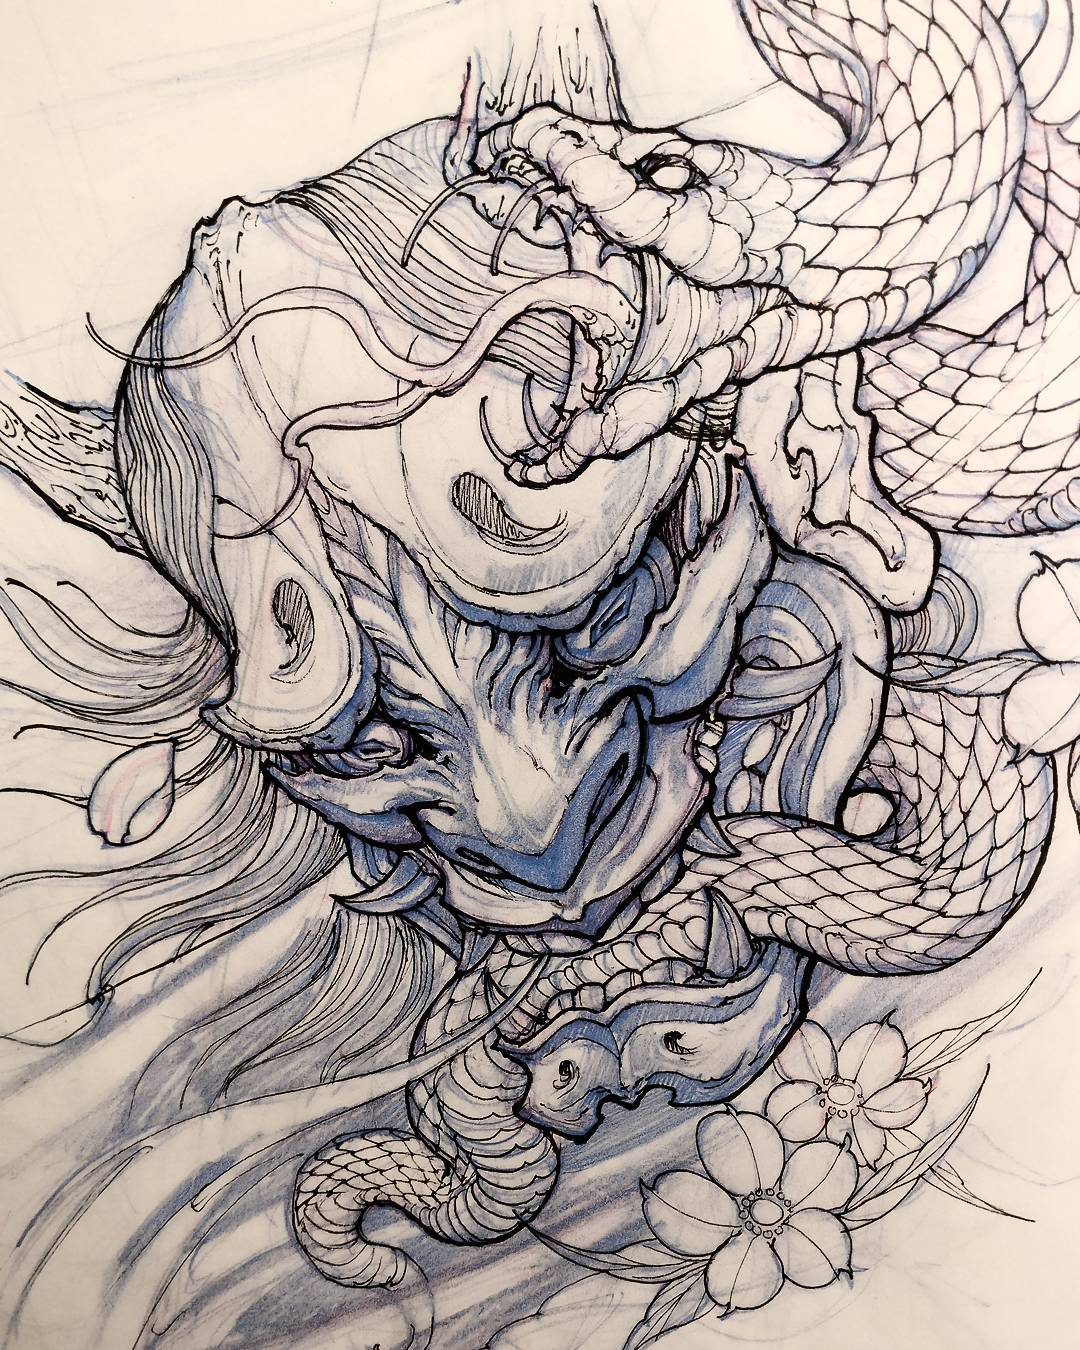 Pin by Talia Gonzalez on Tattoos | Snake drawing, Snake ... |Snake Tattoo Sketches